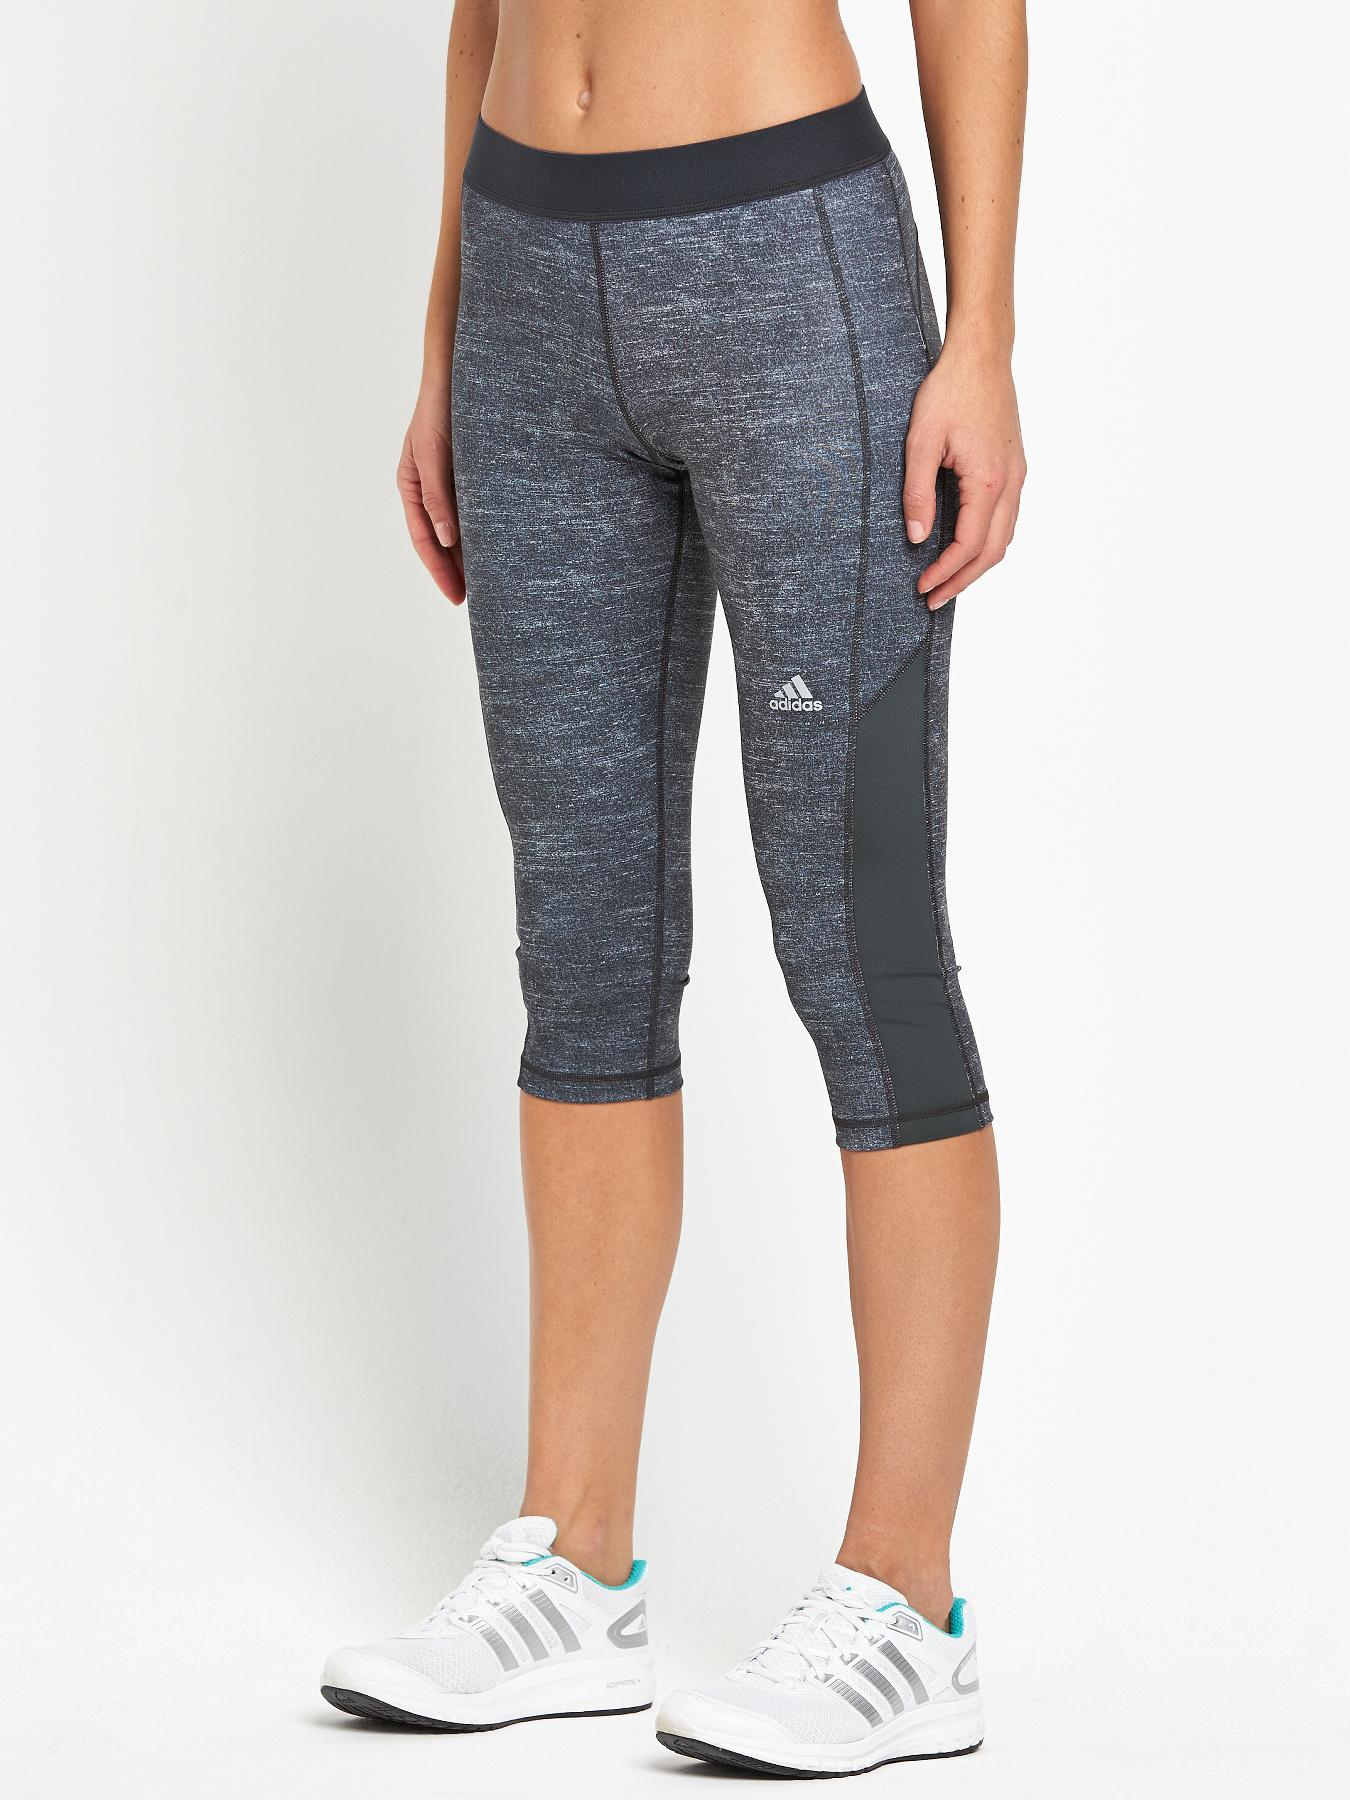 adidas Fuse Techfit Three-Quarter Tights - Grey, Grey